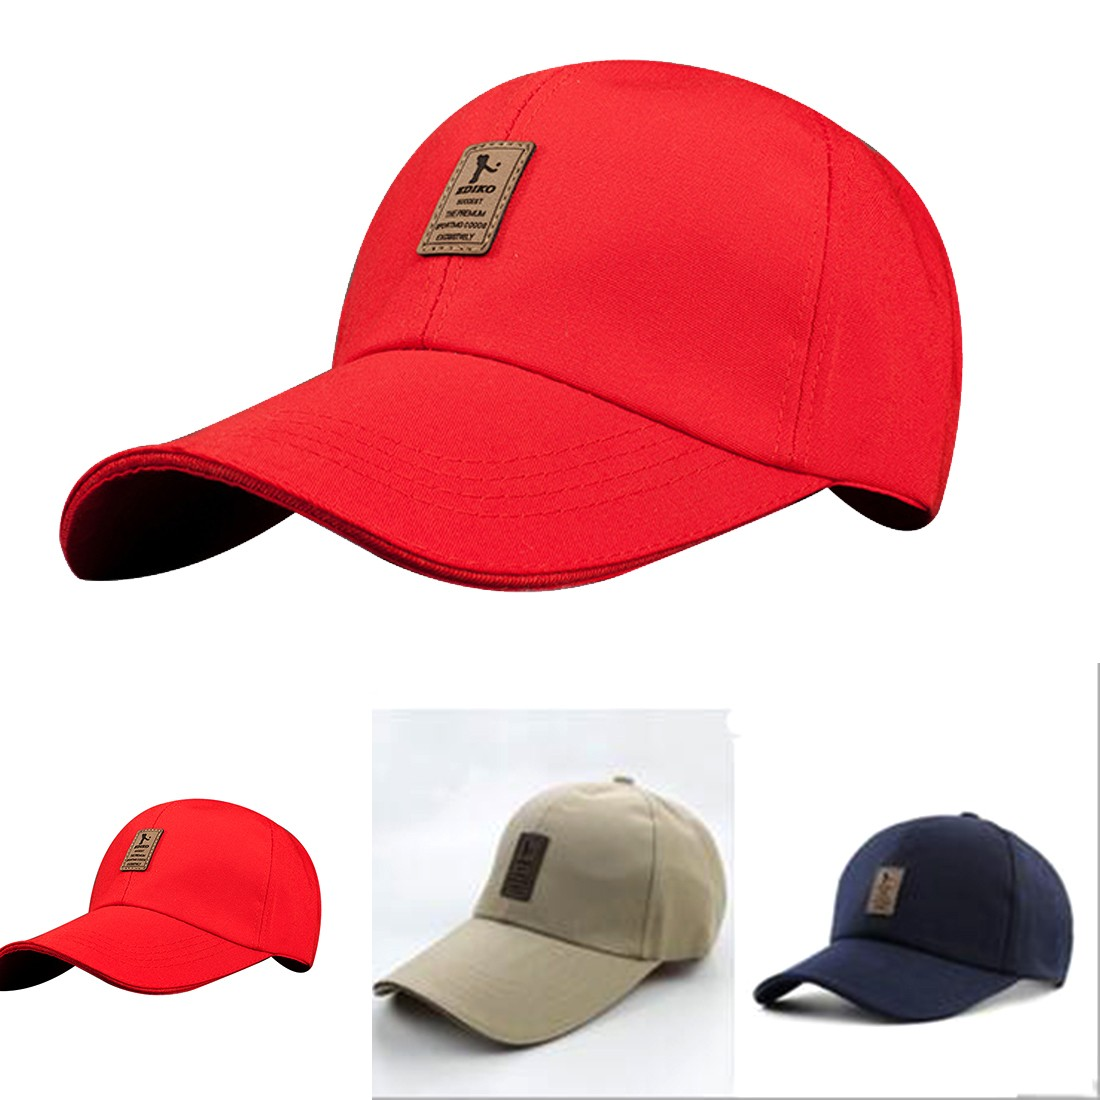 7fce1538fb7 Hot Sale Unisex baseball Cap Women Men Summer Spring Cotton Caps Solid  Adult Cap Different Colors